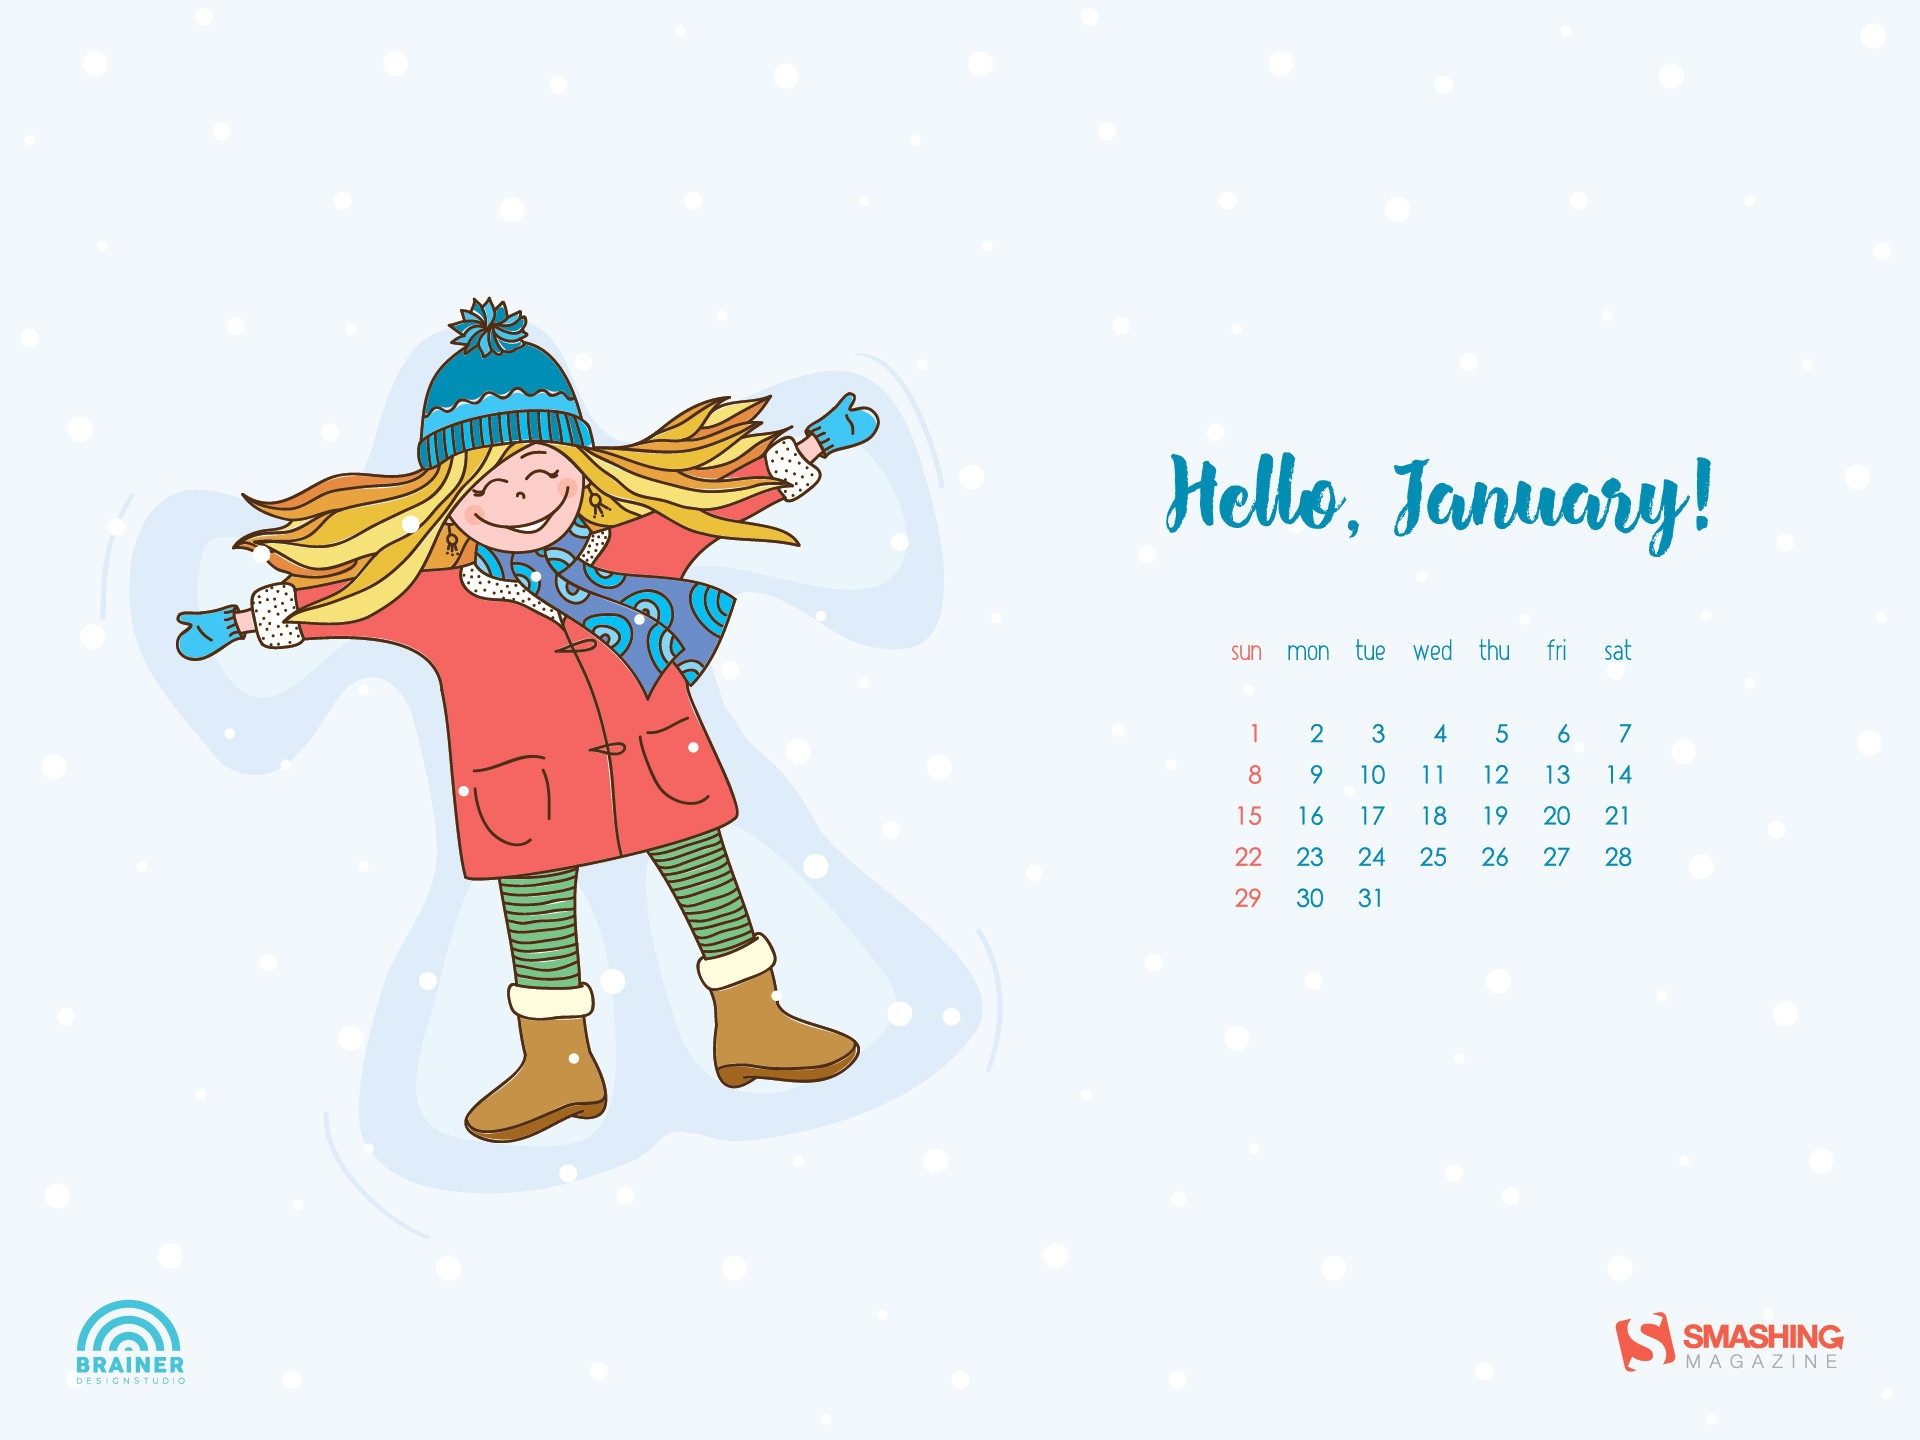 January 2019 Desktop Calendar Wallpaper